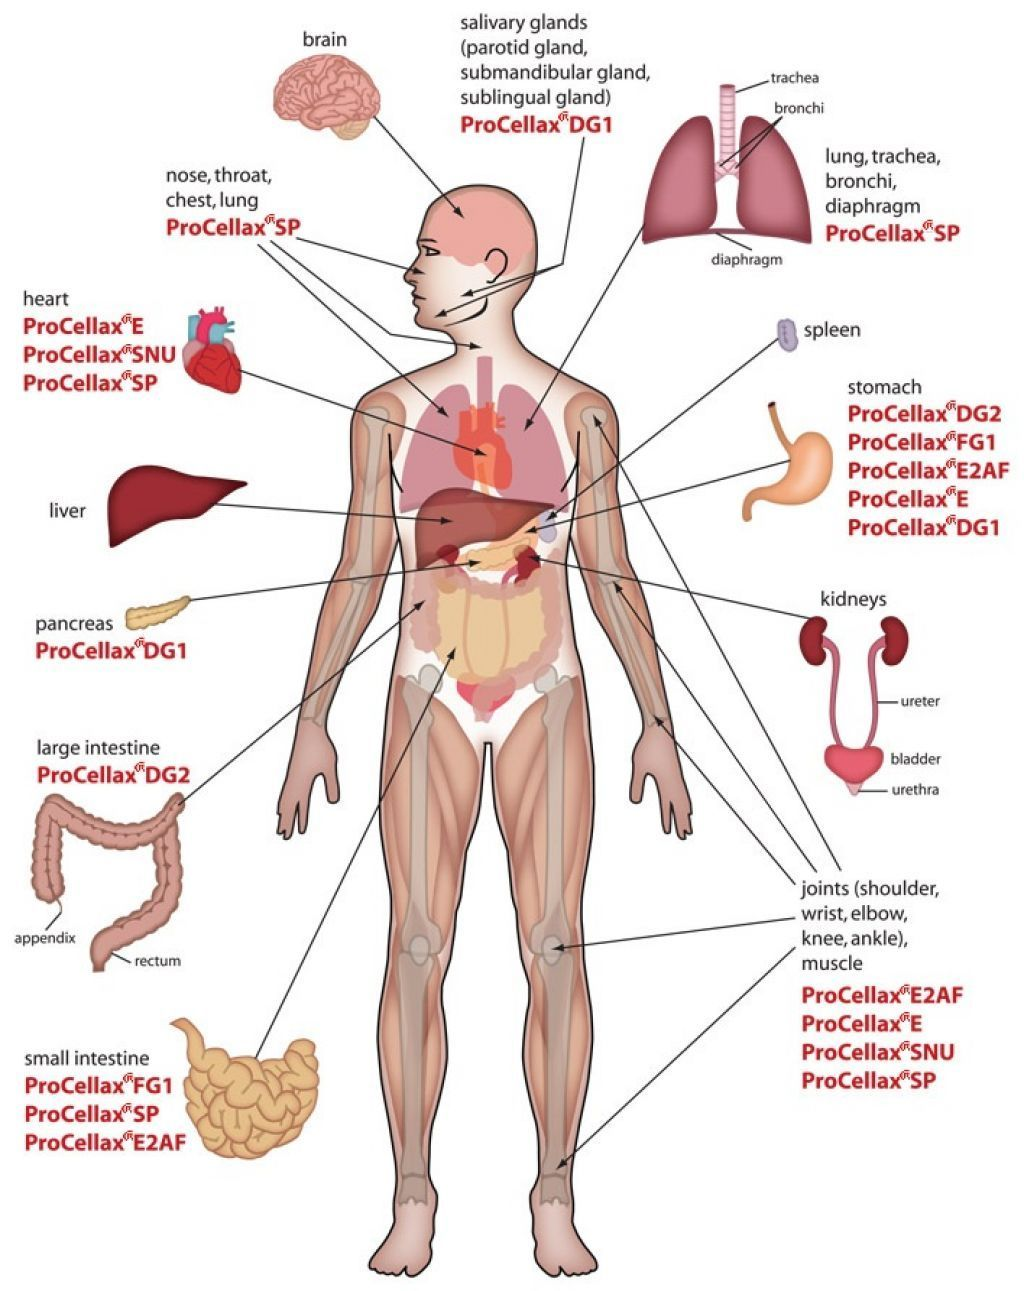 human body picture of organs human body picture of organs human body anatomy internal organs [ 1024 x 1291 Pixel ]